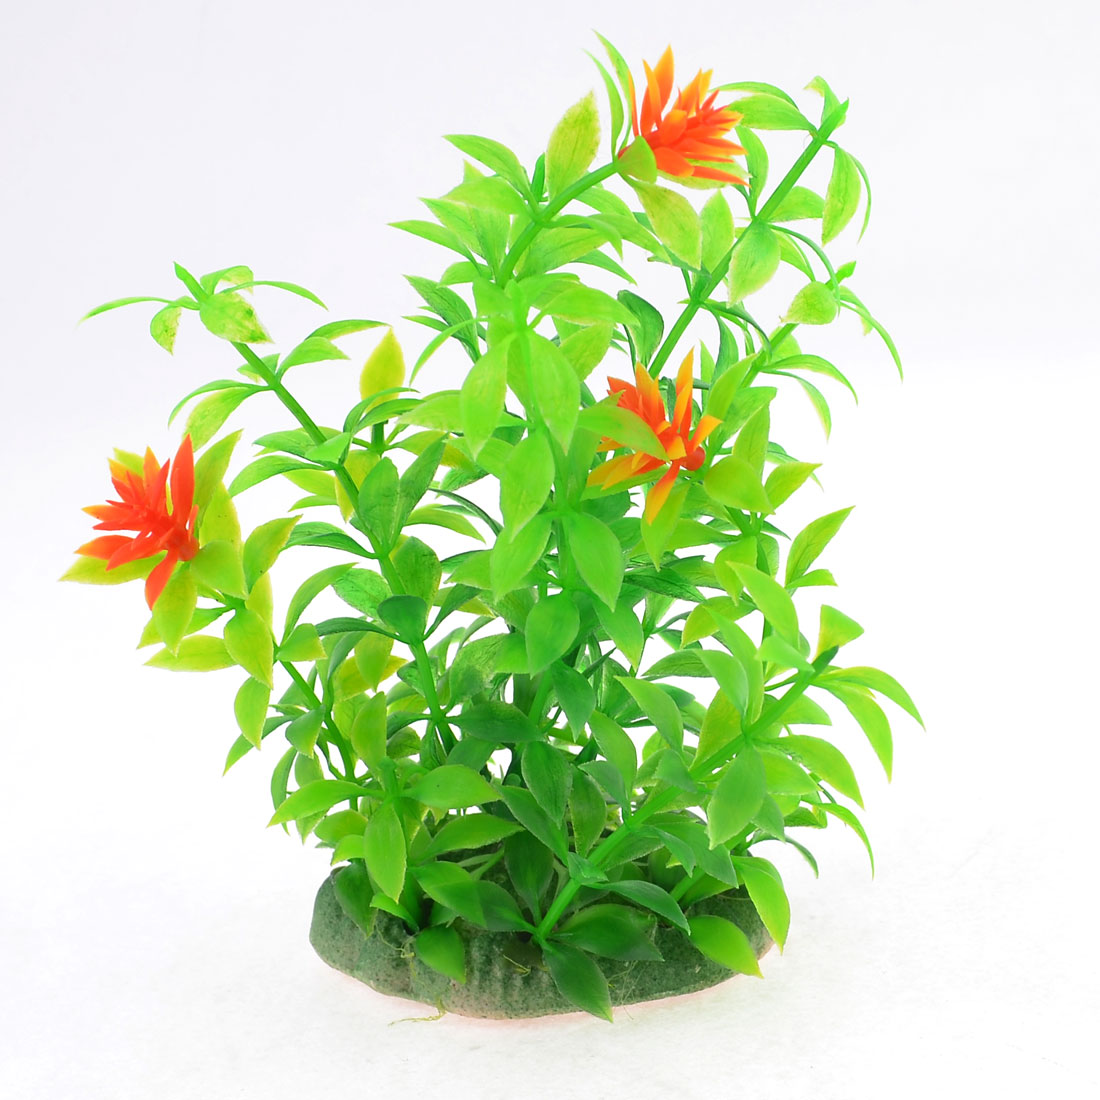 Plastic Aquatic Green Grass Orange Red Flower Plant Aquarium Simulation Decor